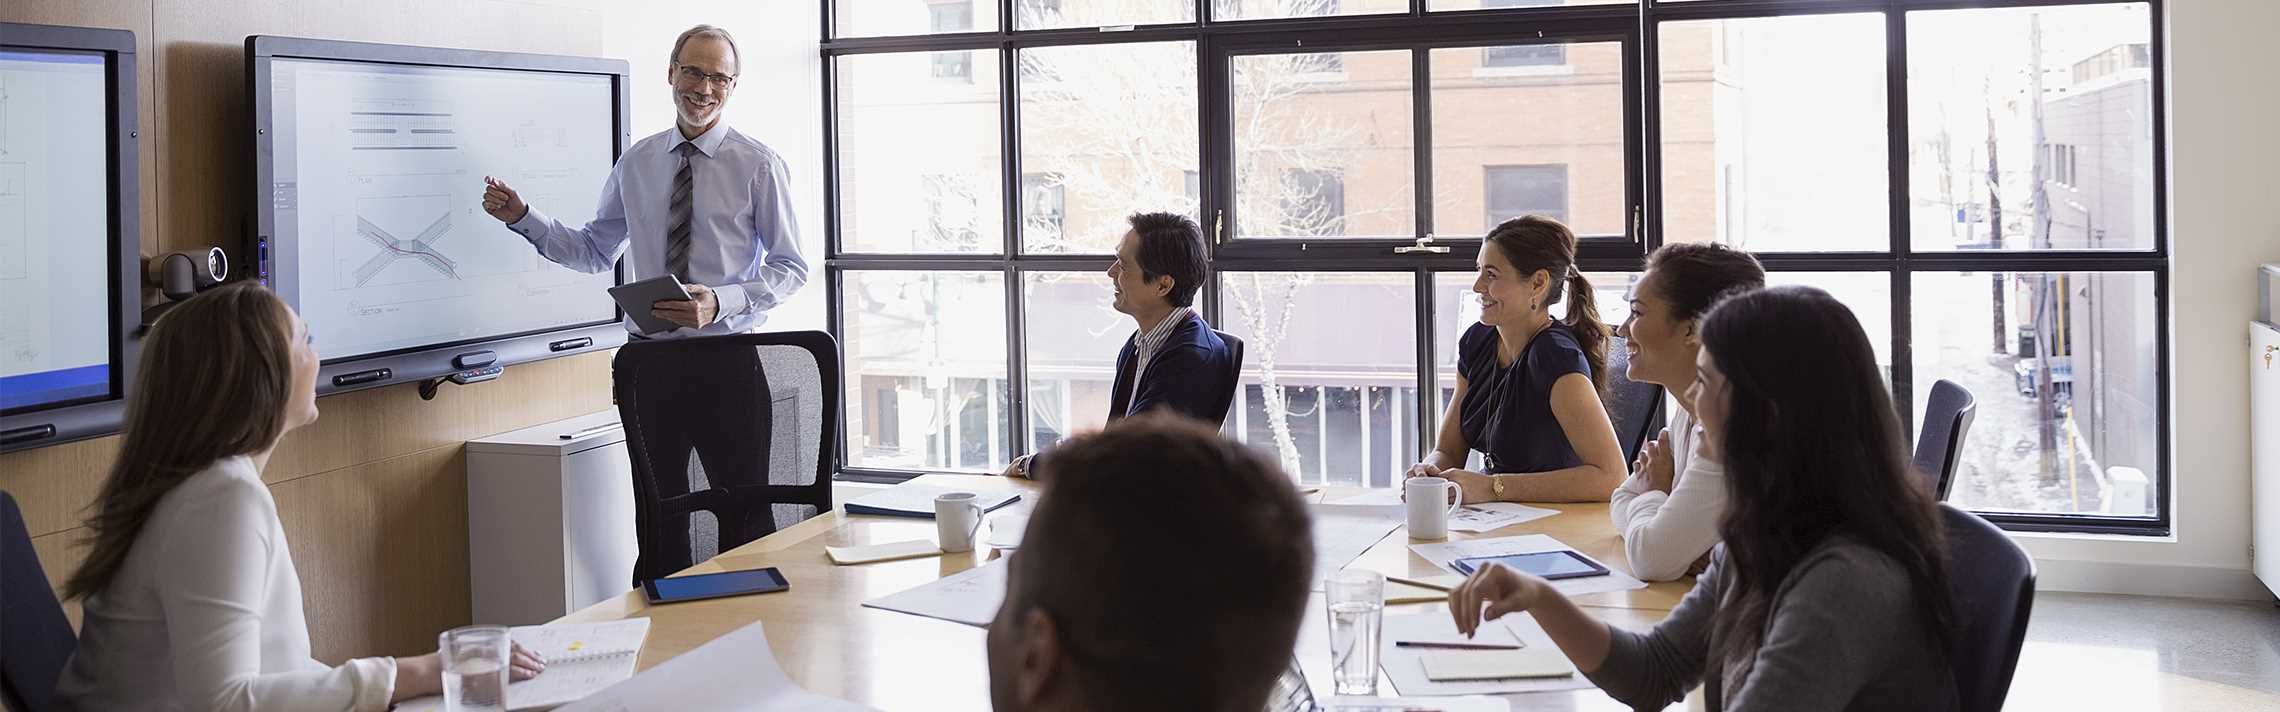 Businessman leading a meeting at a monitor in conference room.